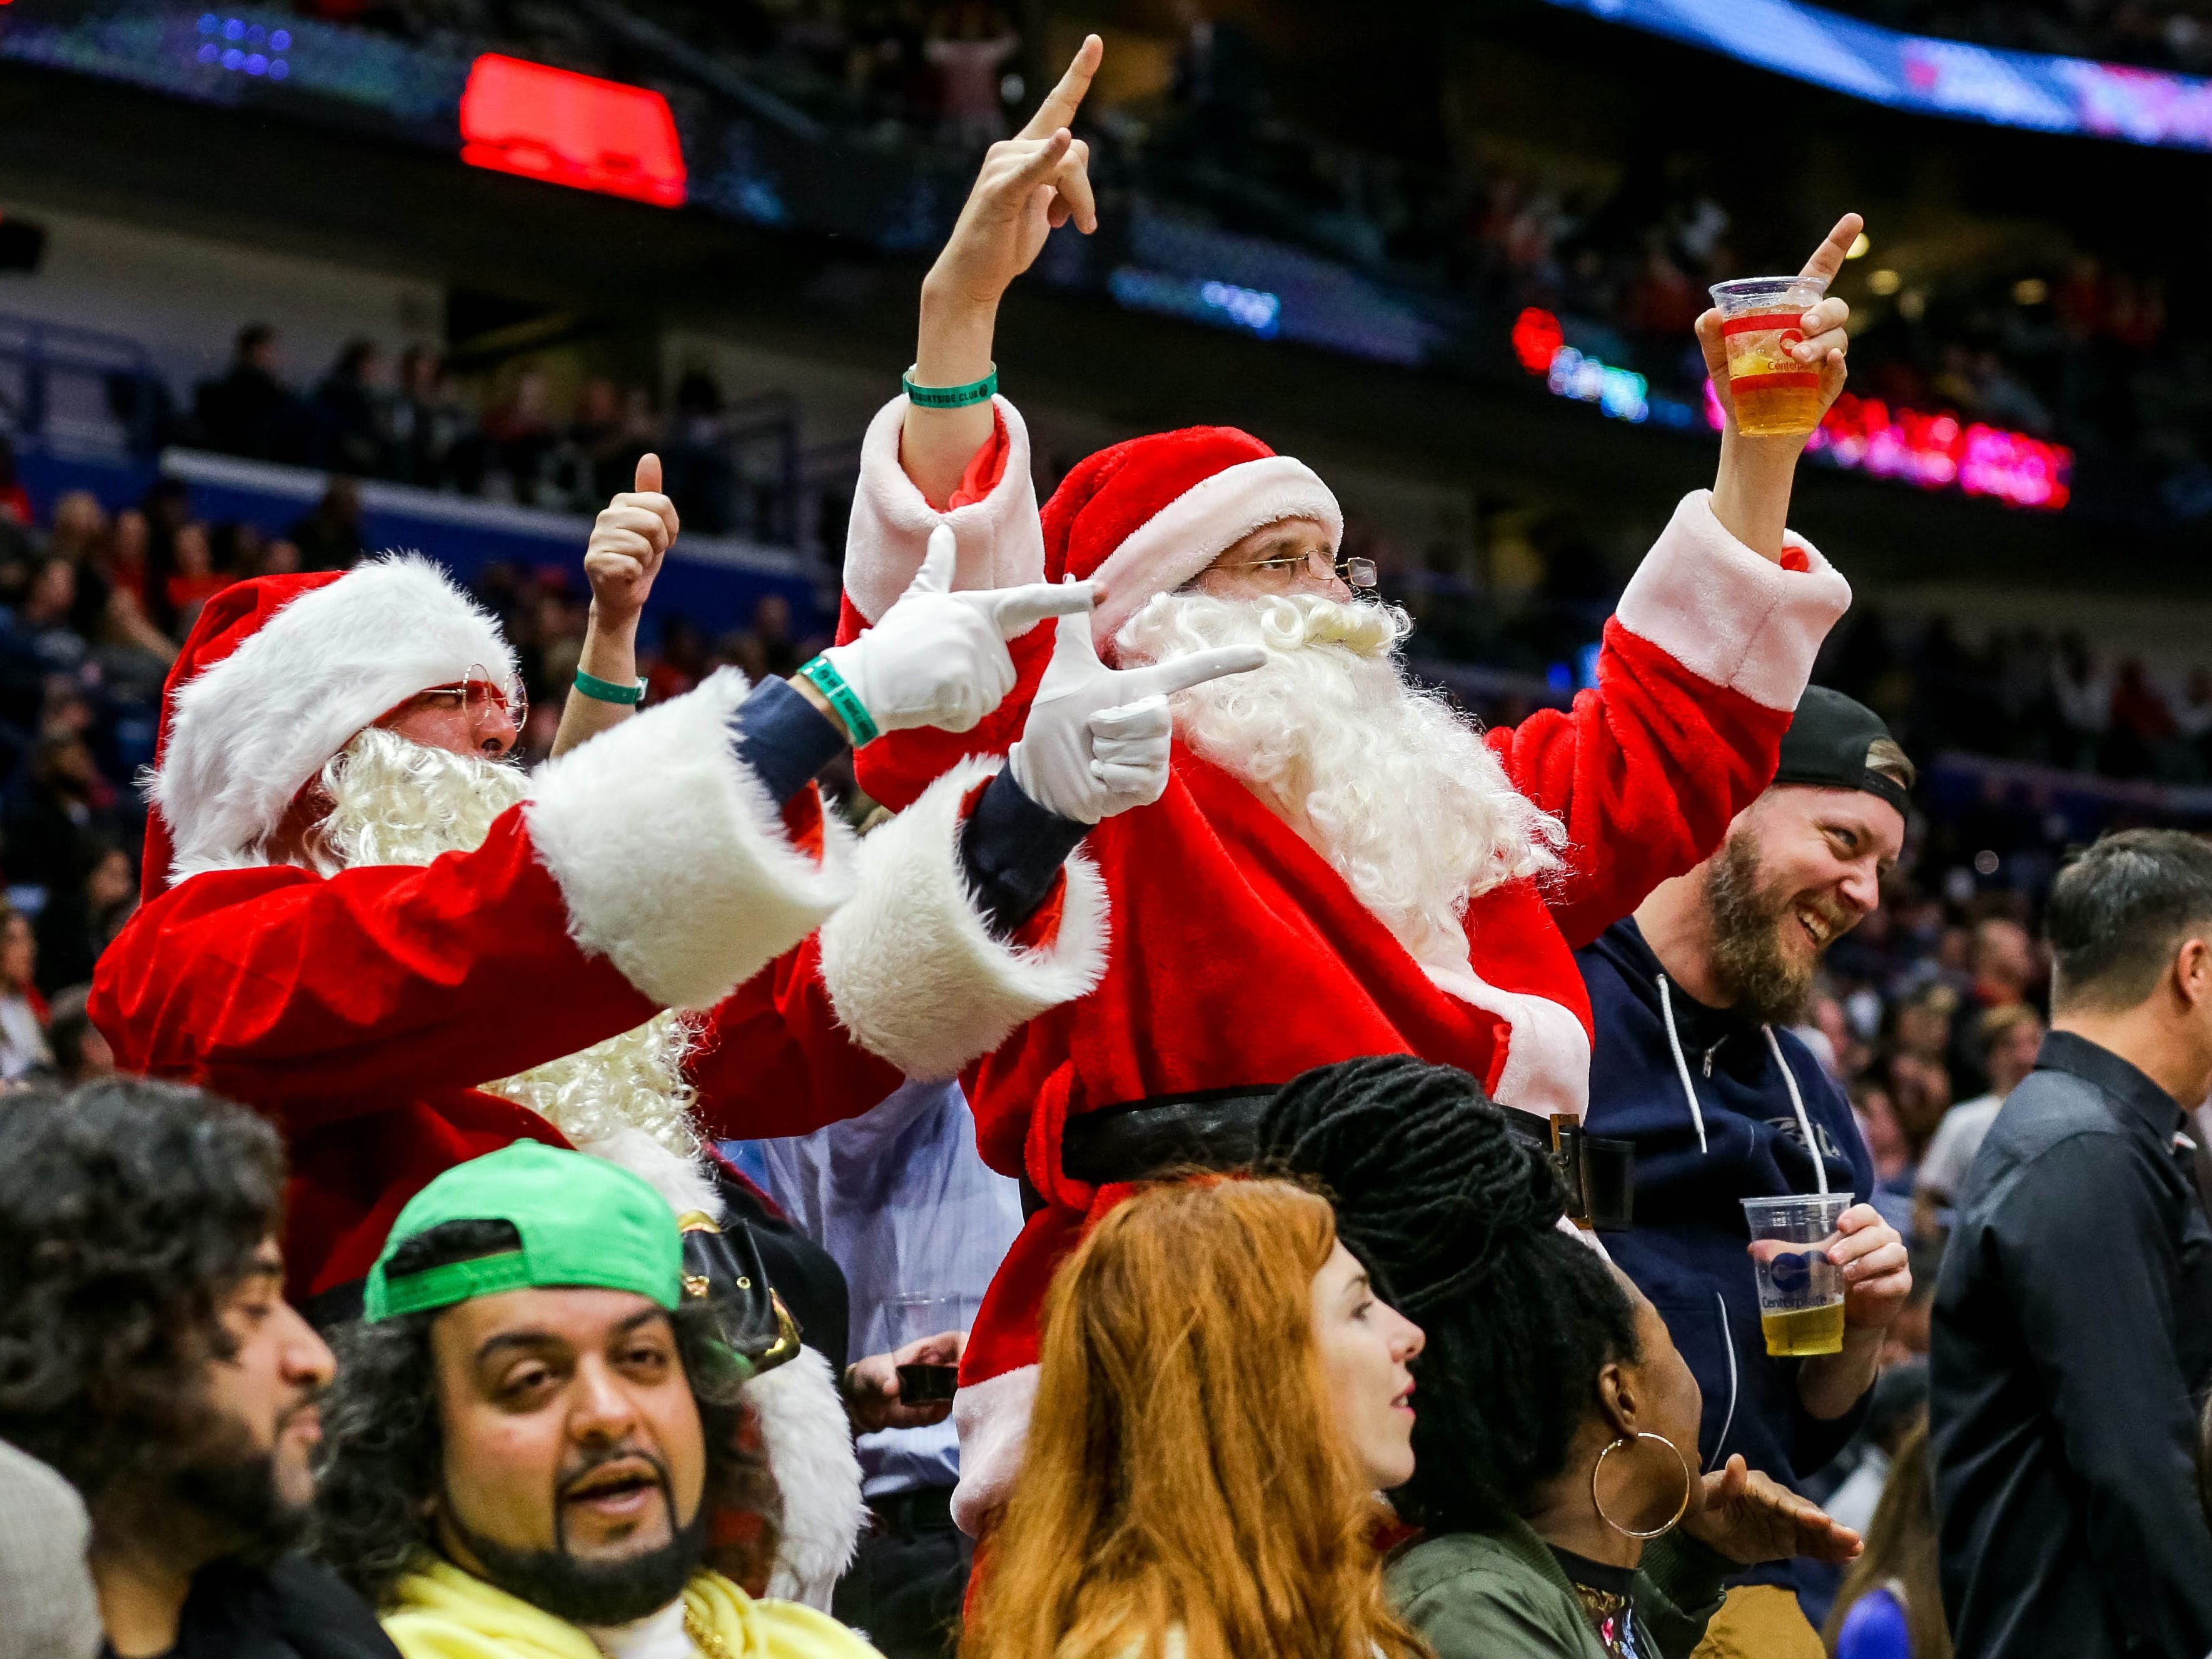 Dec. 7: Some festive Pelican fans take in a game against the Grizzlies at the Smoothie King Center.